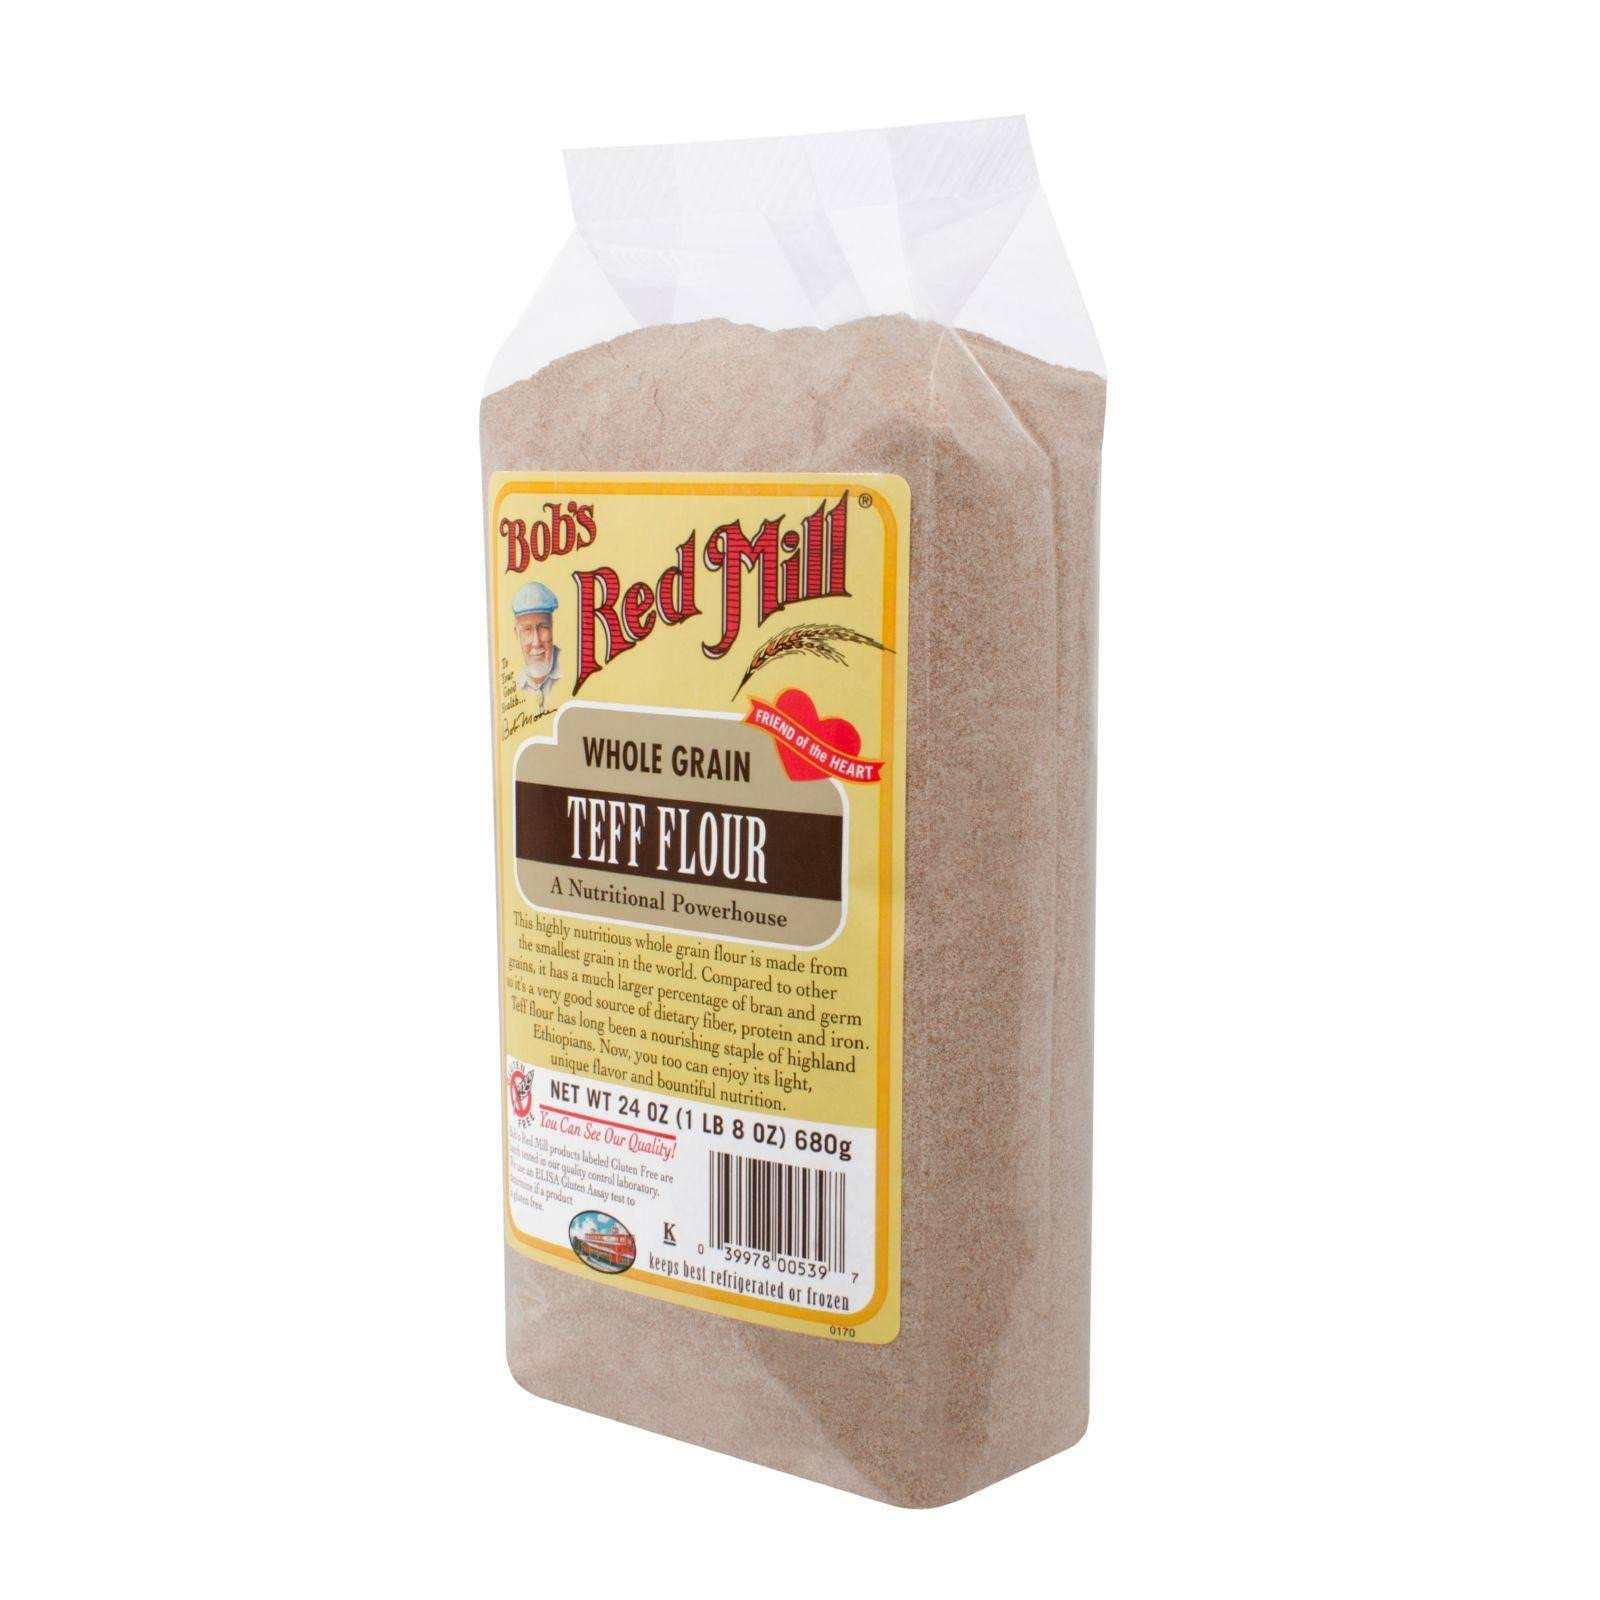 Bob's Red Mill Whole Grain Teff Flour - 24oz